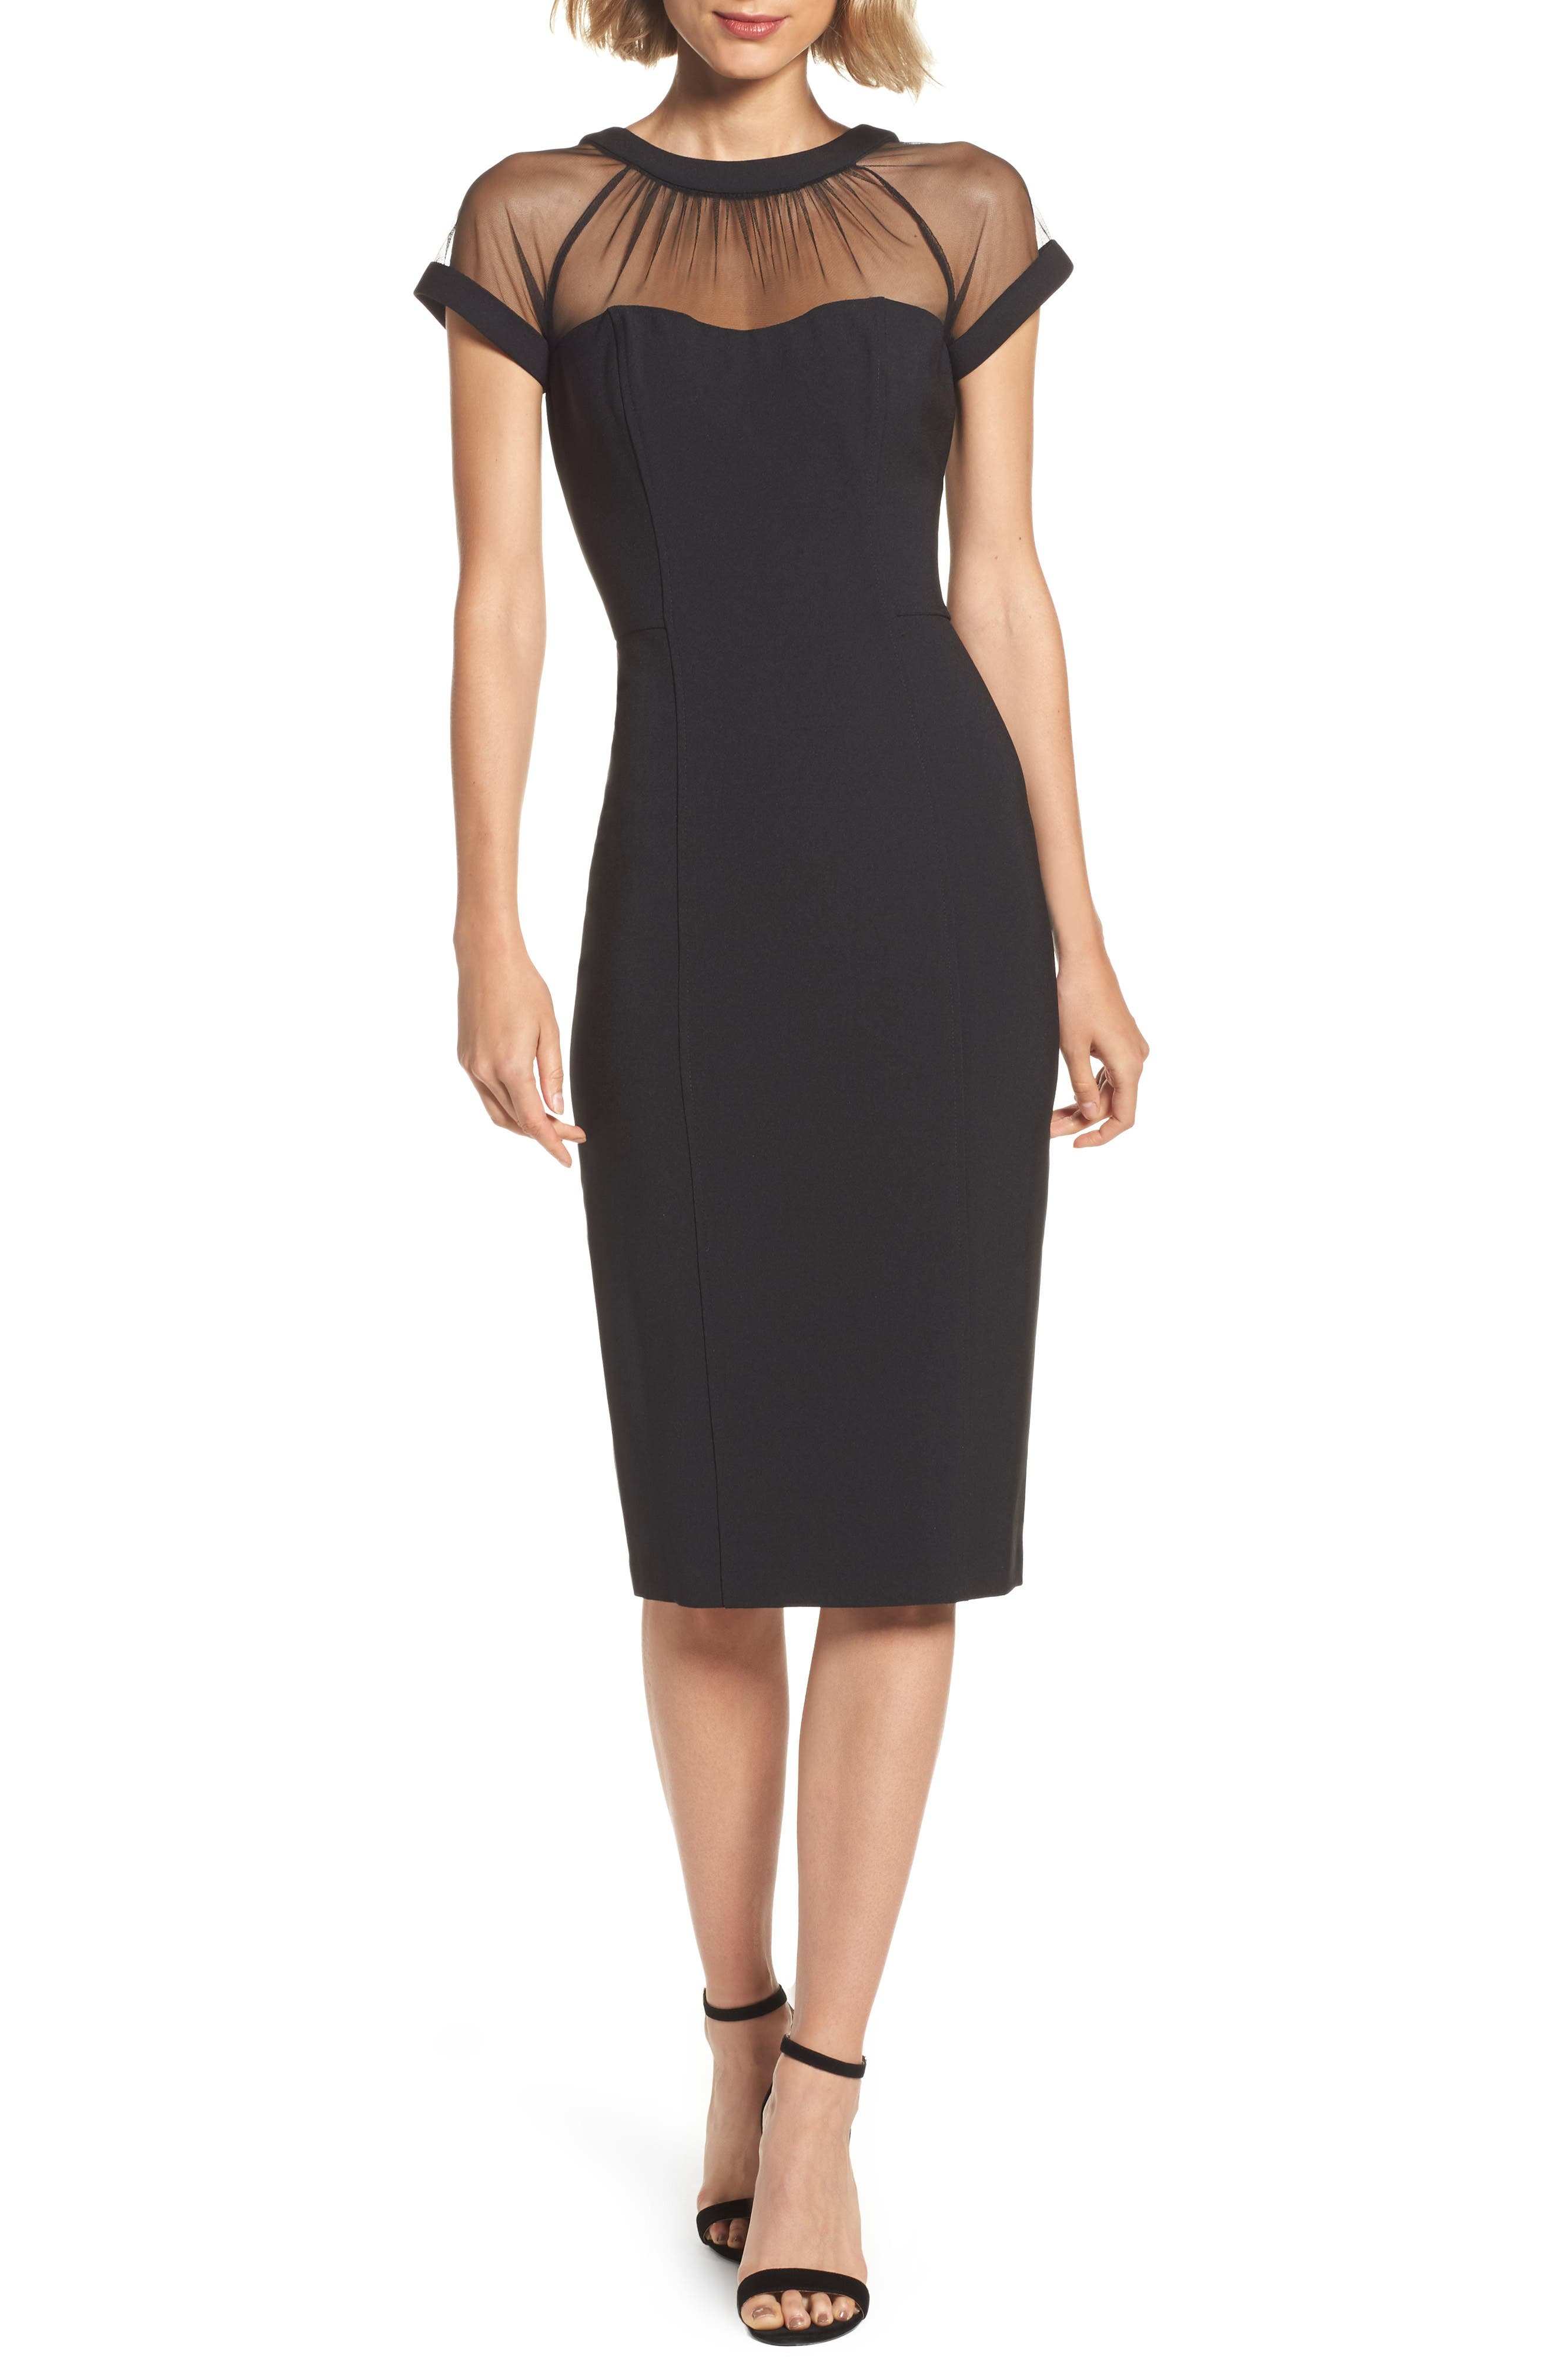 Petite Dresses for Women | Nordstrom